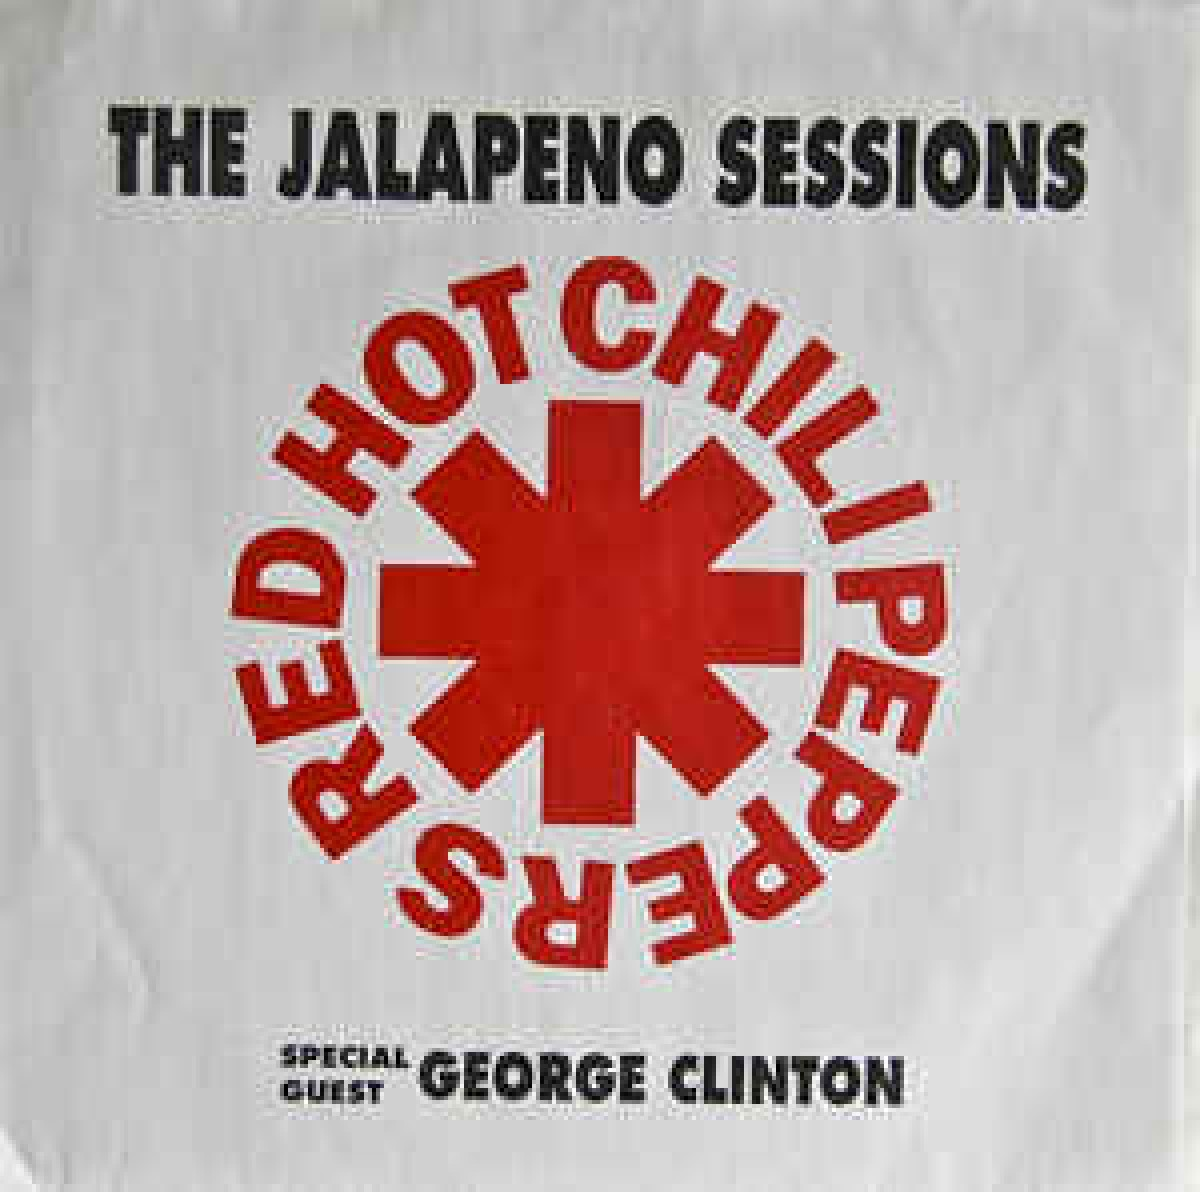 The Jalapeno Sessions